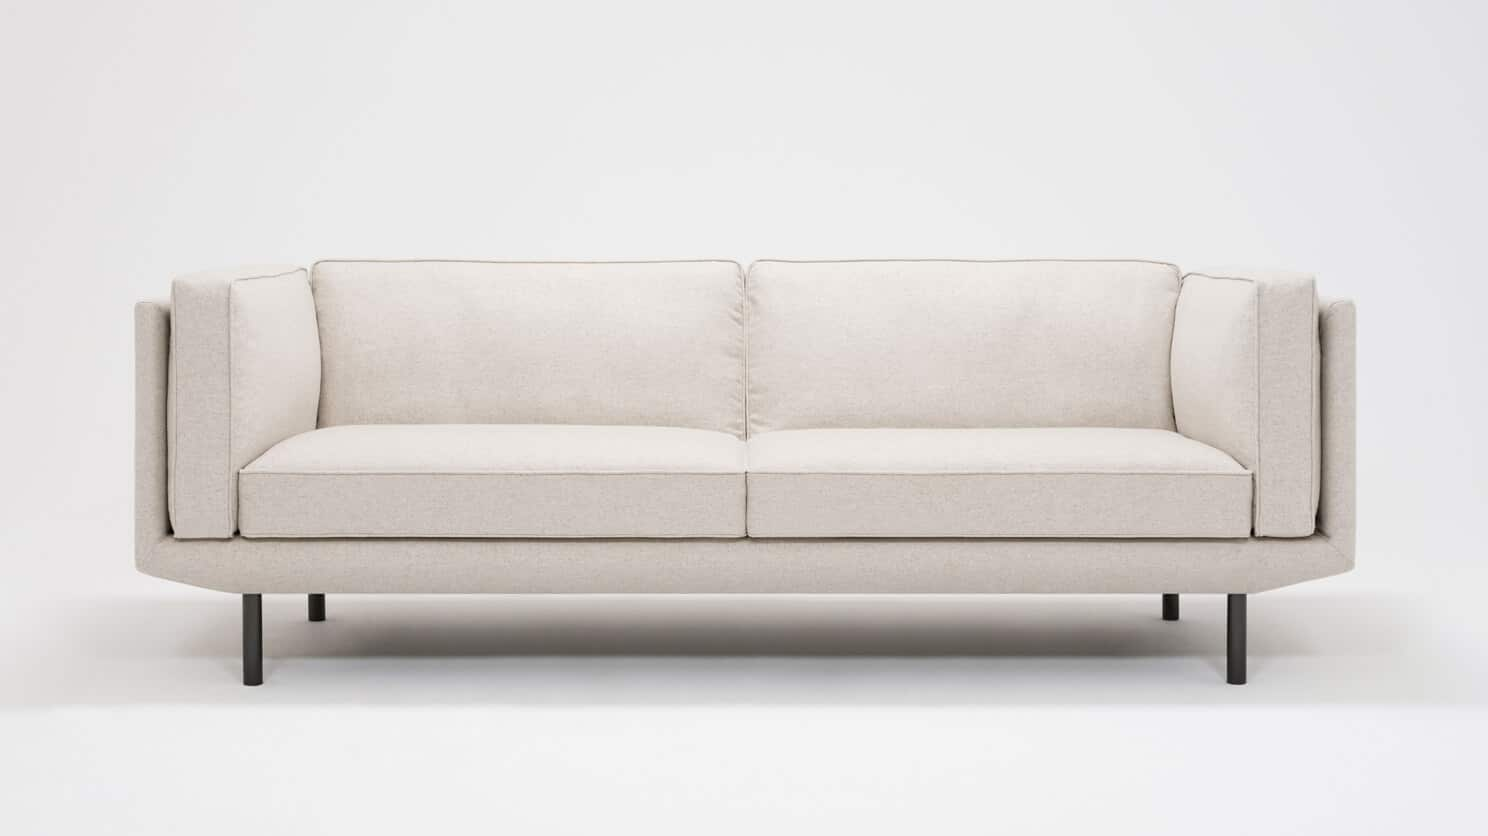 30154 01 01 sofa plateau 84 feather lana sand front view